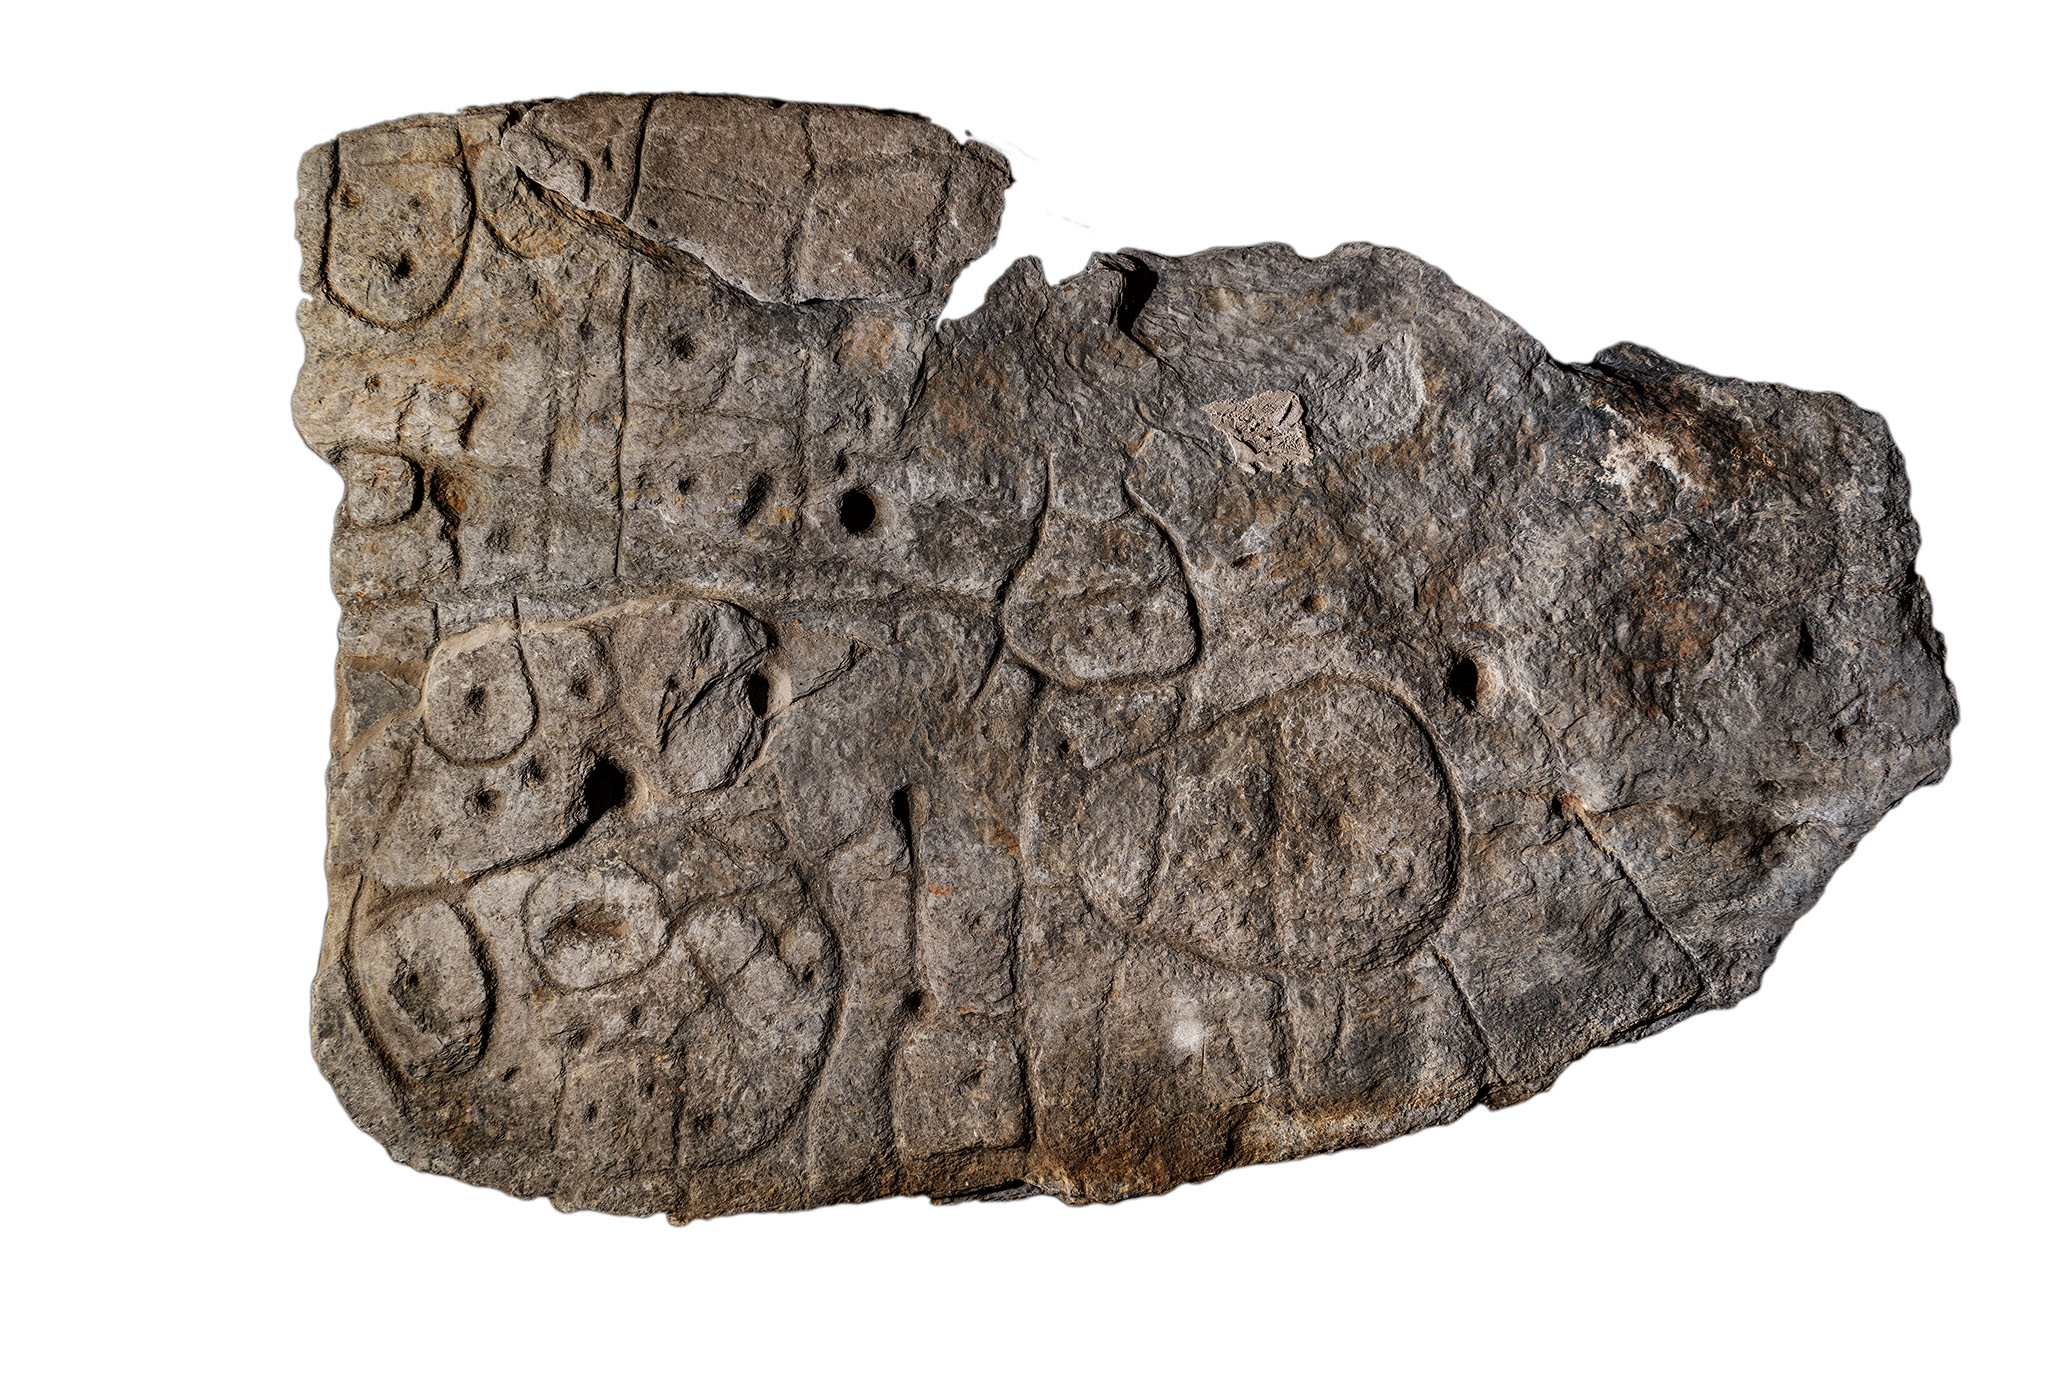 Oldest 3D map in Europe unearthed